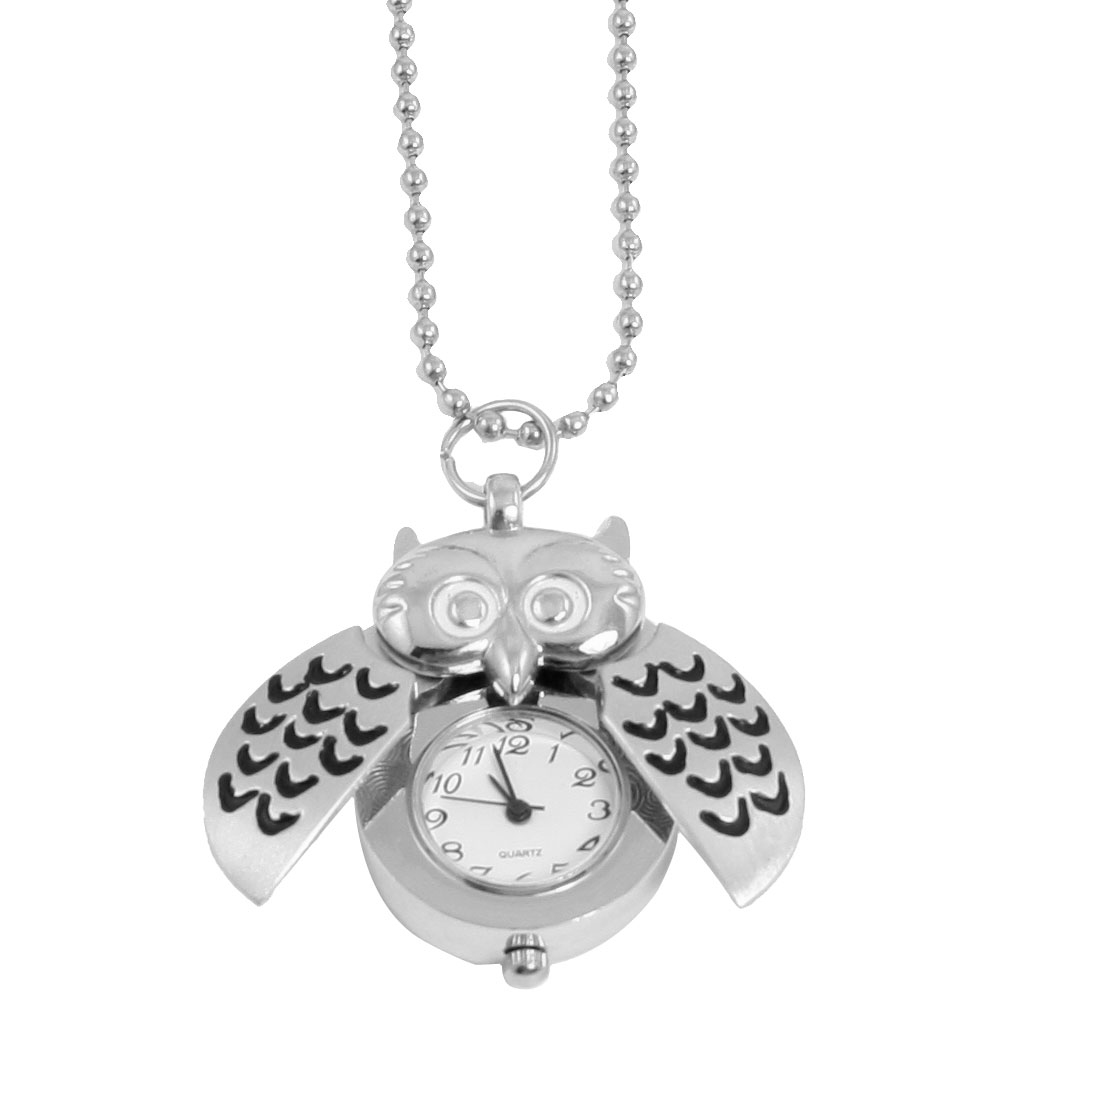 Black Silver Tone Owl Pendant Metal Necklace Quartz Watch for Ladies